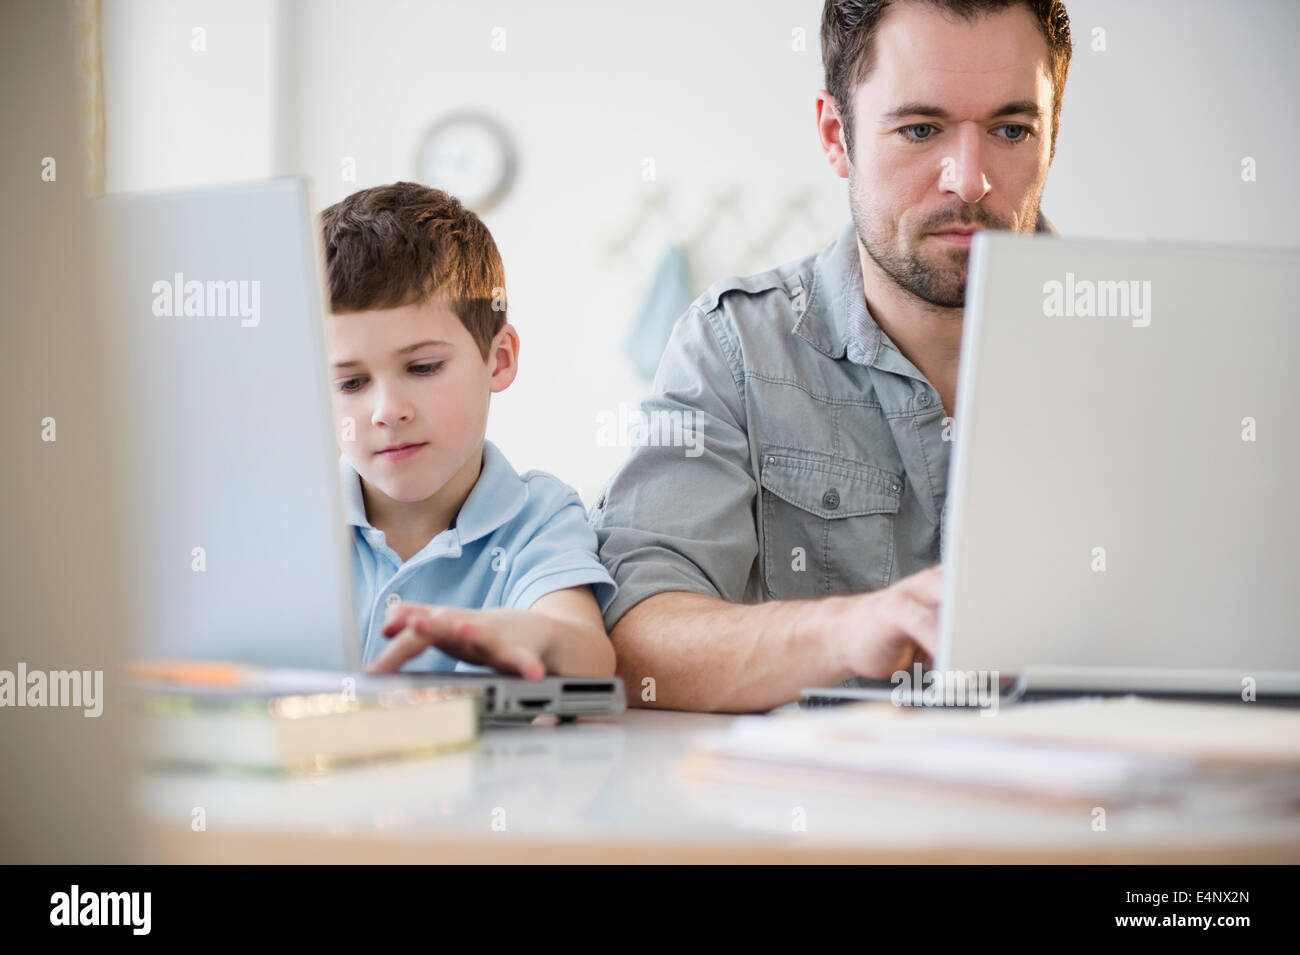 Father and son (8-9) working on laptops - Stock Image